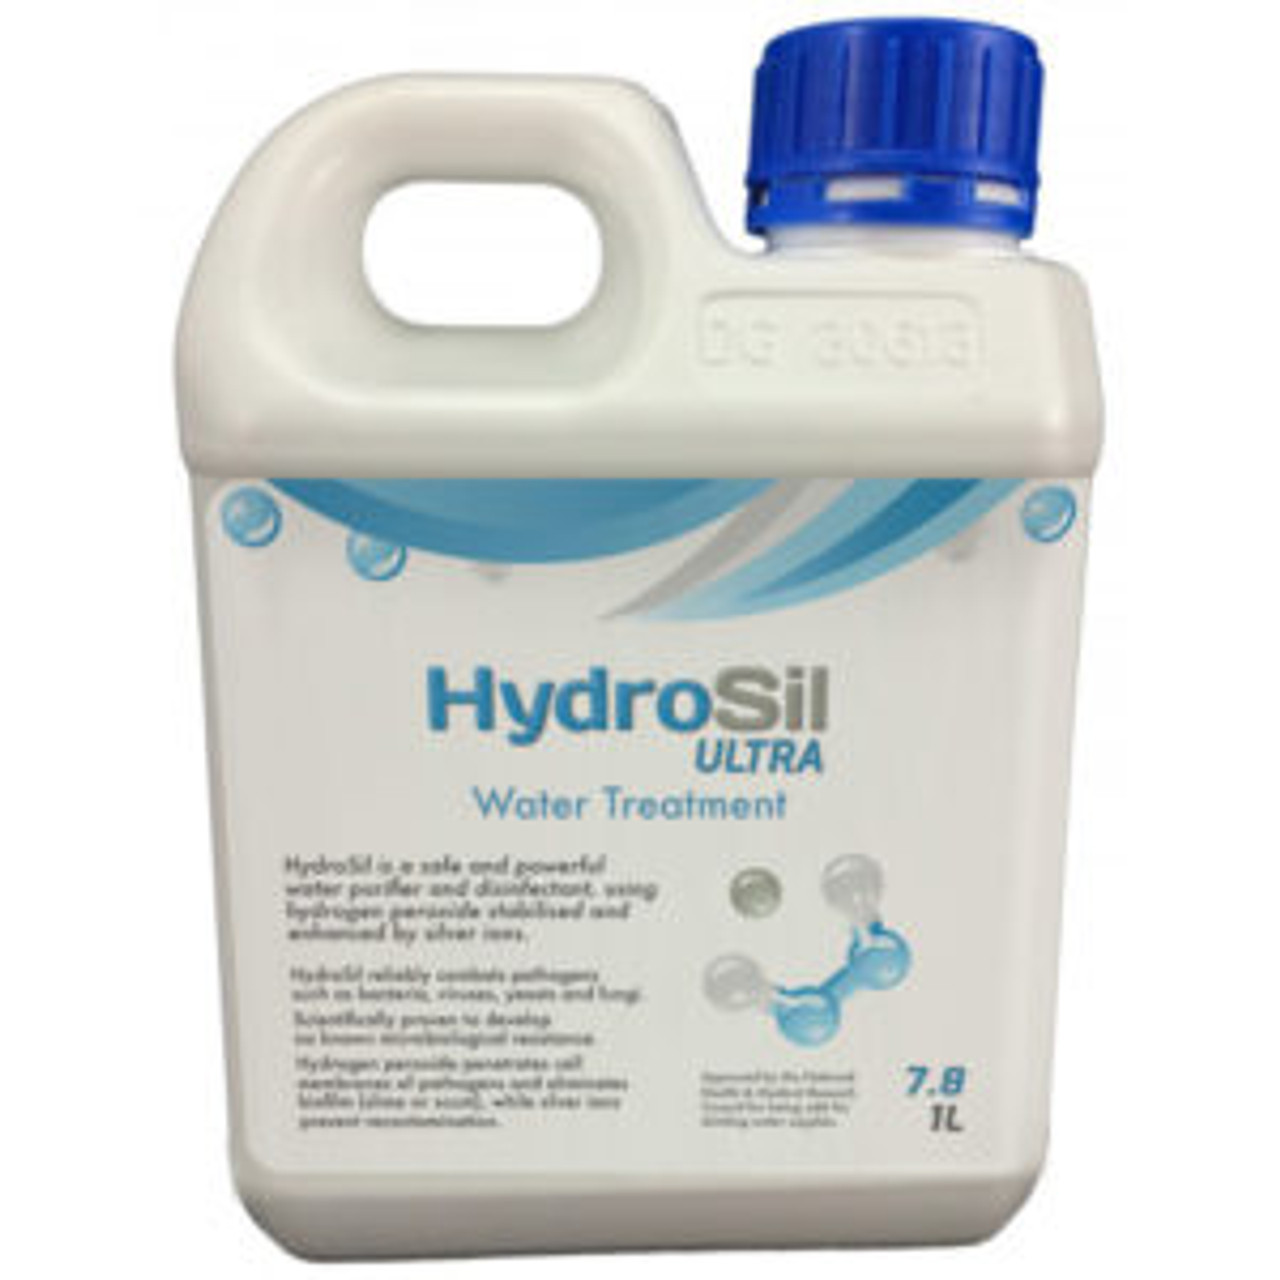 HydroSil Ultra 7.8% Australian Made water sanitizer